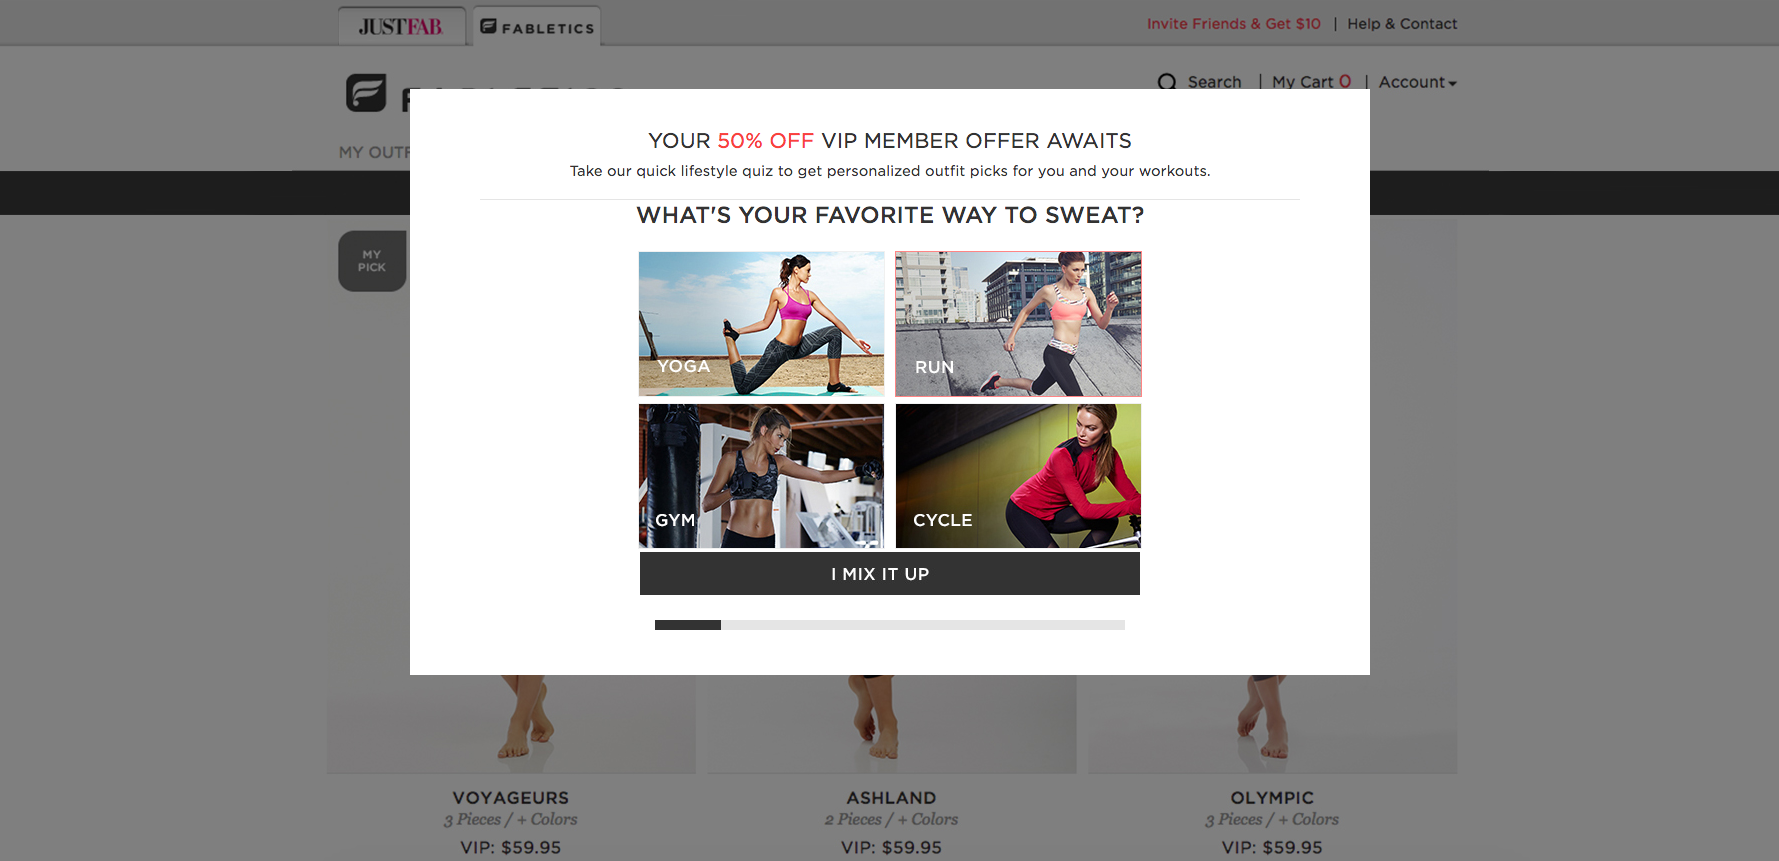 fabletics pop up